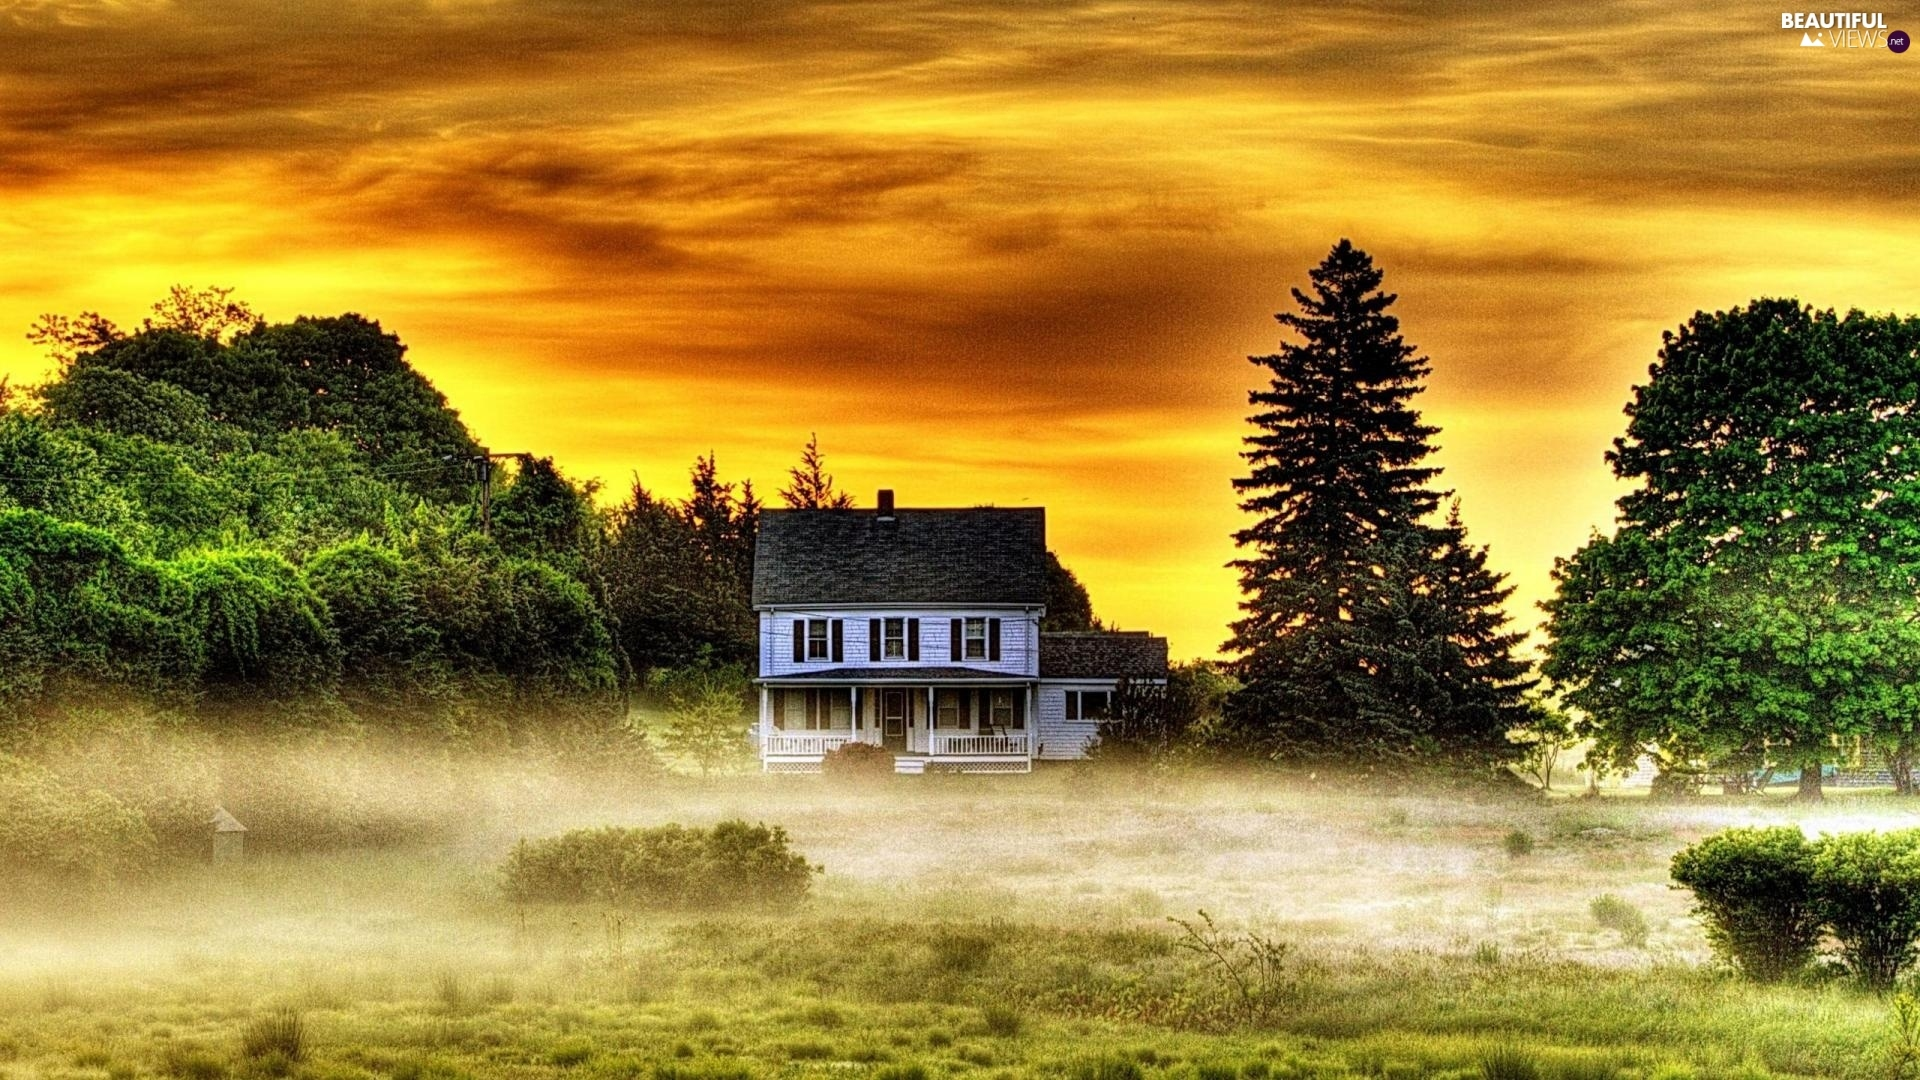 trees, west, Fog, house, viewes, sun